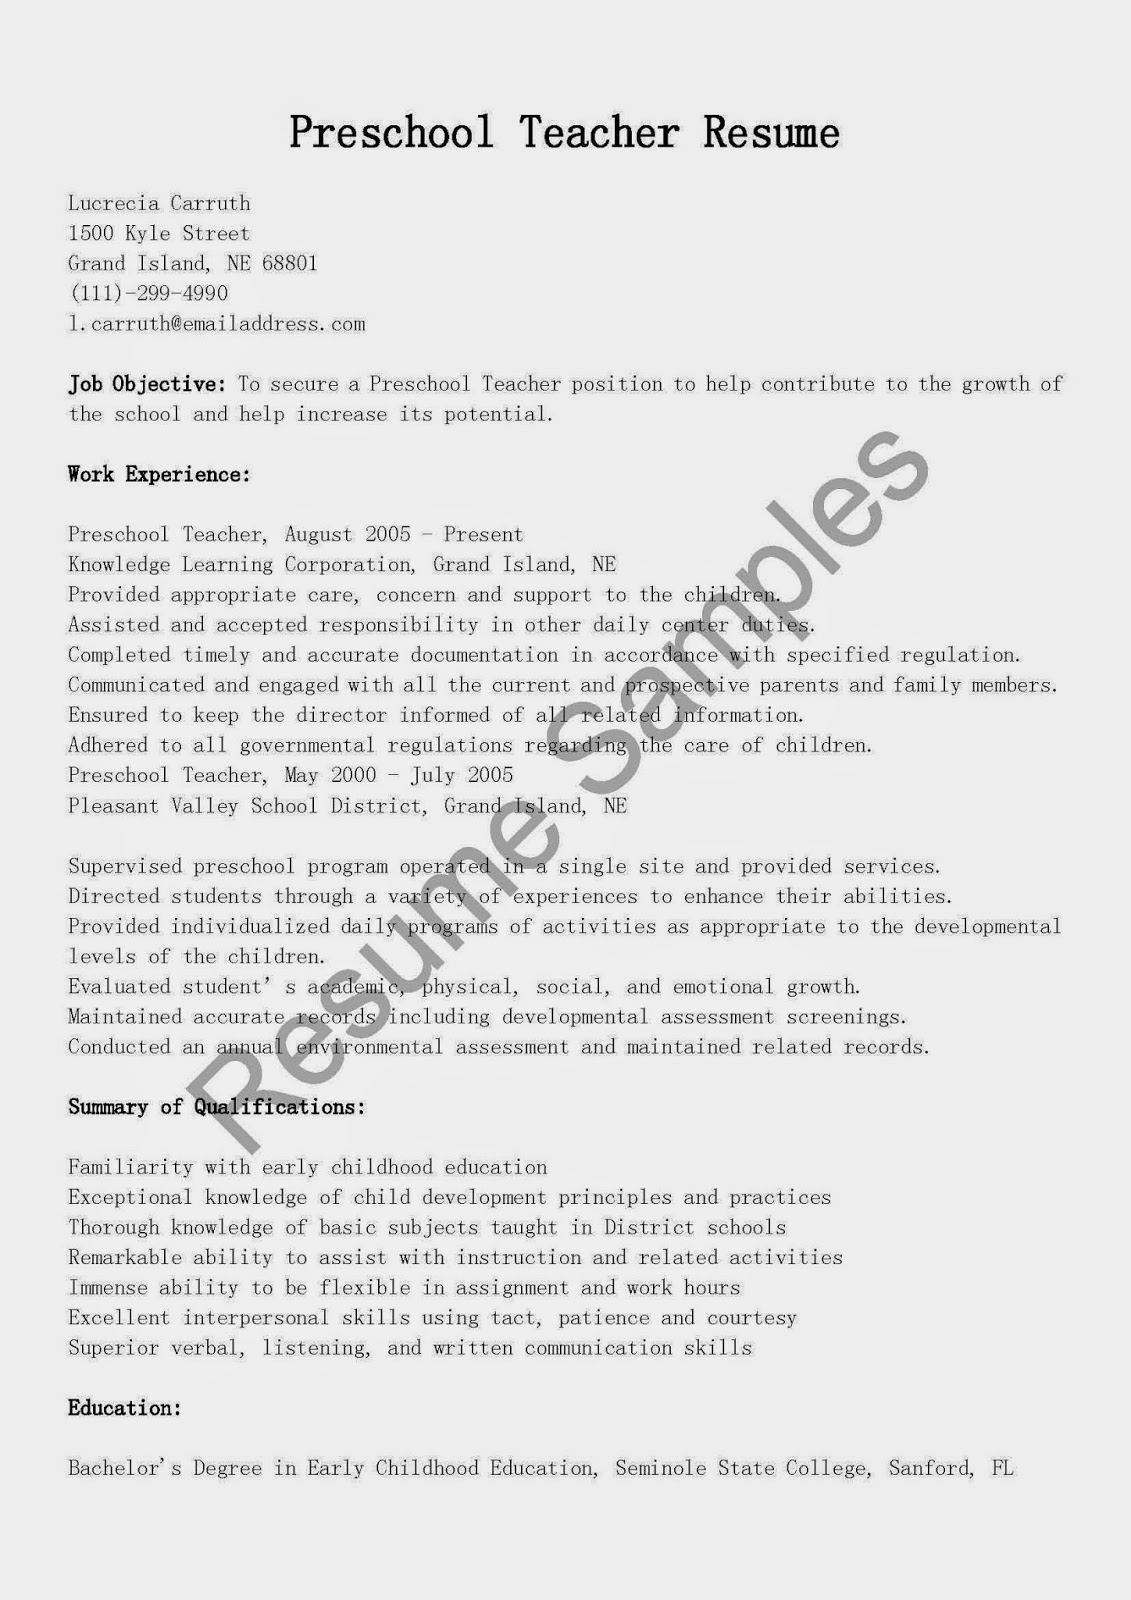 Teacher CV Template Lessons Pupils Teaching Job School Coursework Teacher  Resume Sample